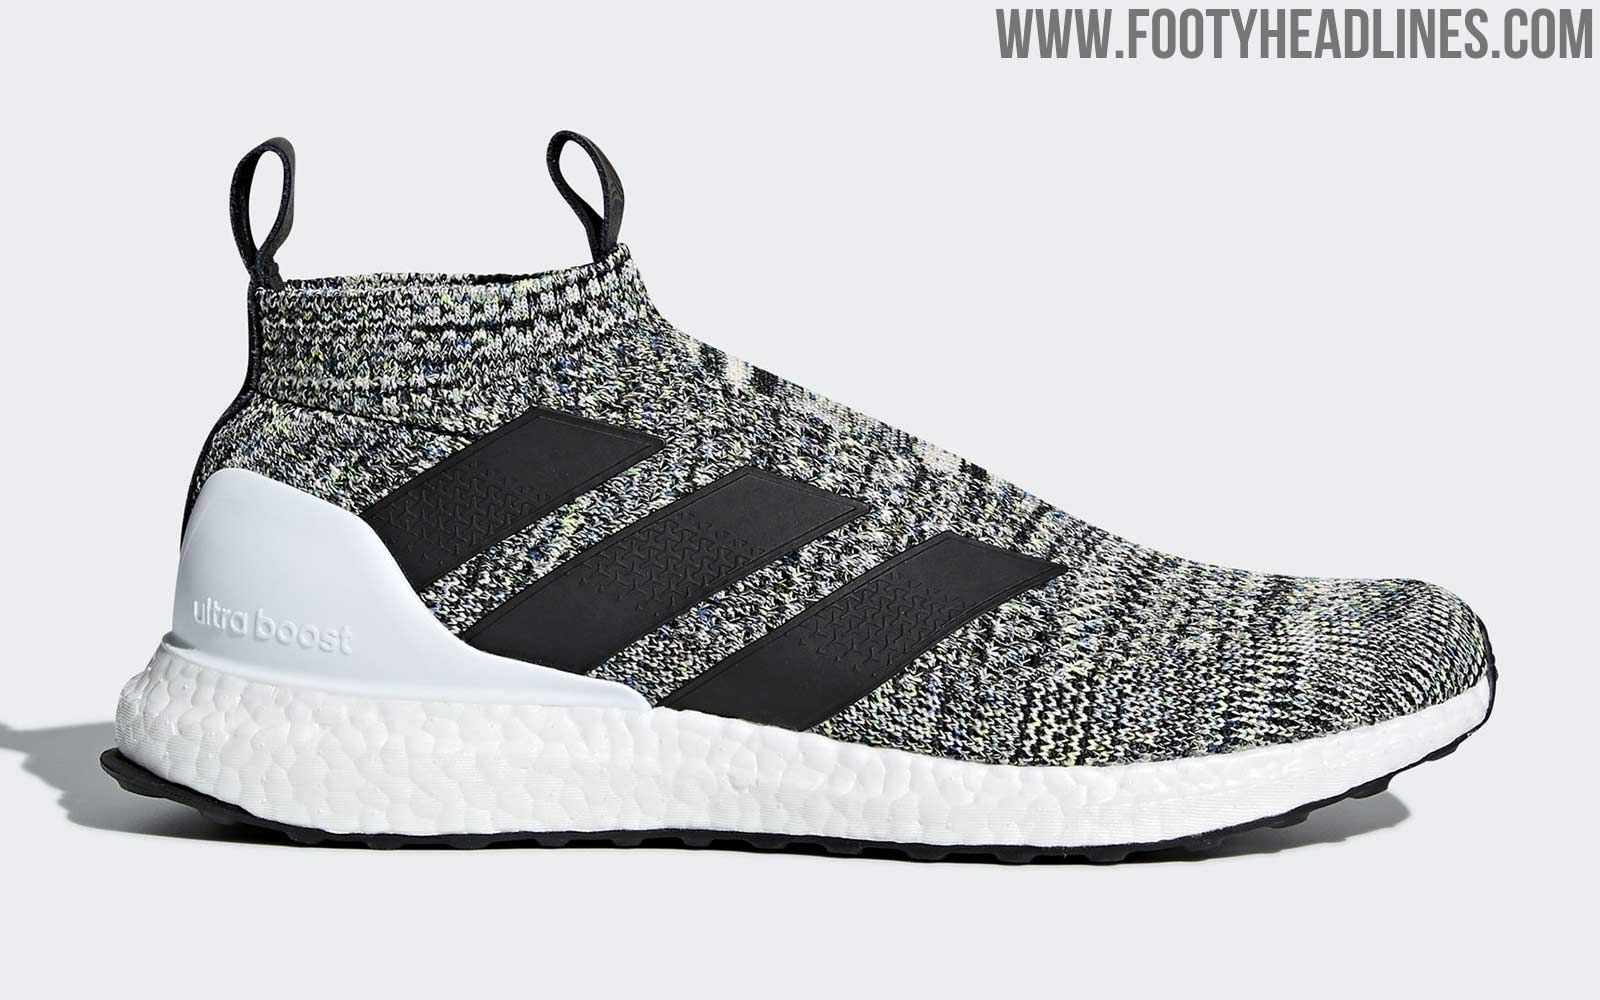 get cheap 79de7 b3968 Adidas is set to release a unique new colorway for its laceless Adidas Ace  16+ Ultra Boost sneakers, dubbed the Adidas Ace 16+ Ultra Boost Multi  edition.